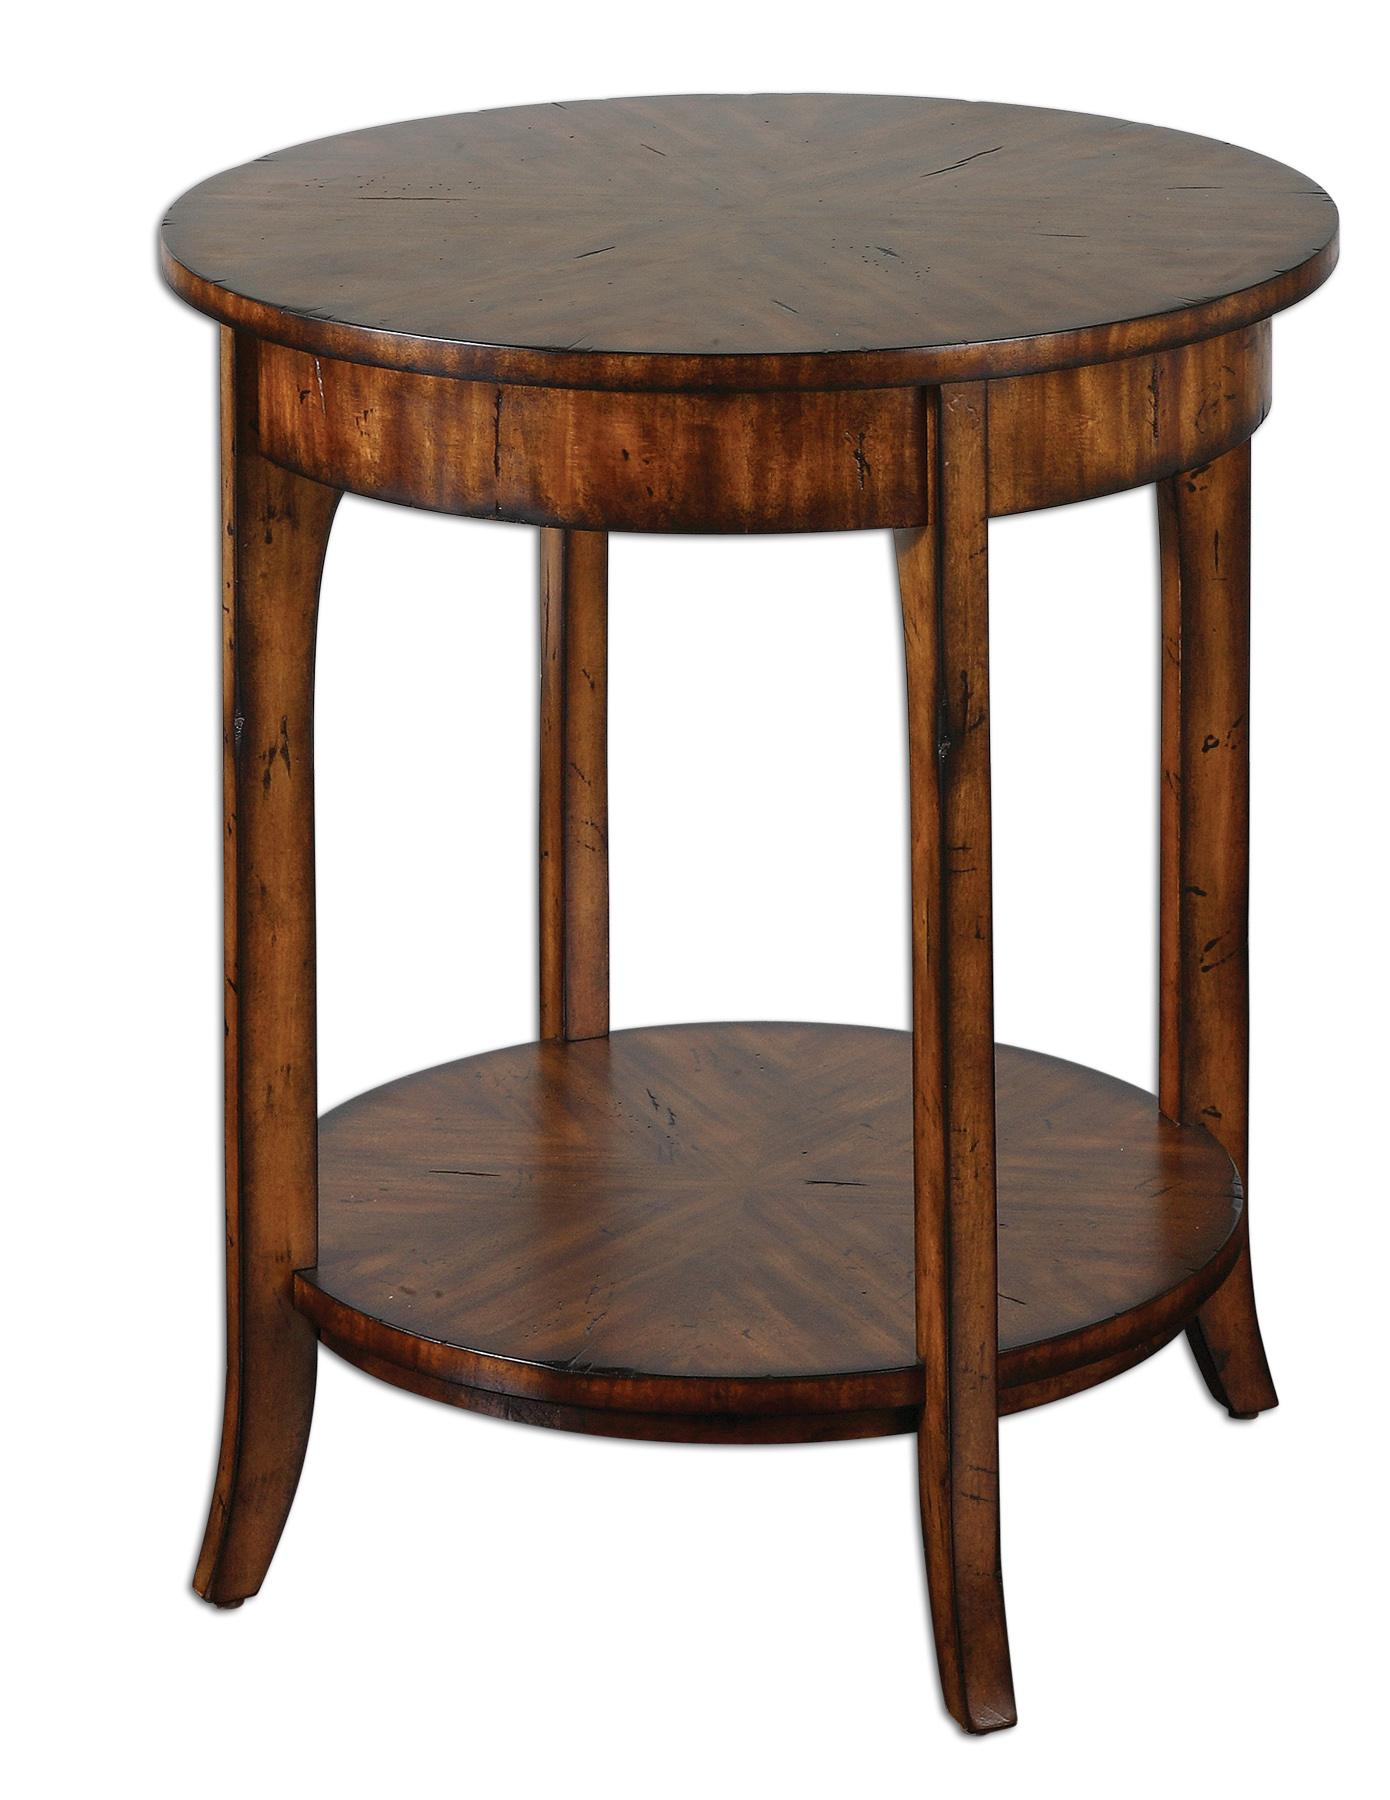 Accent Furniture - Occasional Tables Carmel Lamp Table by Uttermost at Factory Direct Furniture